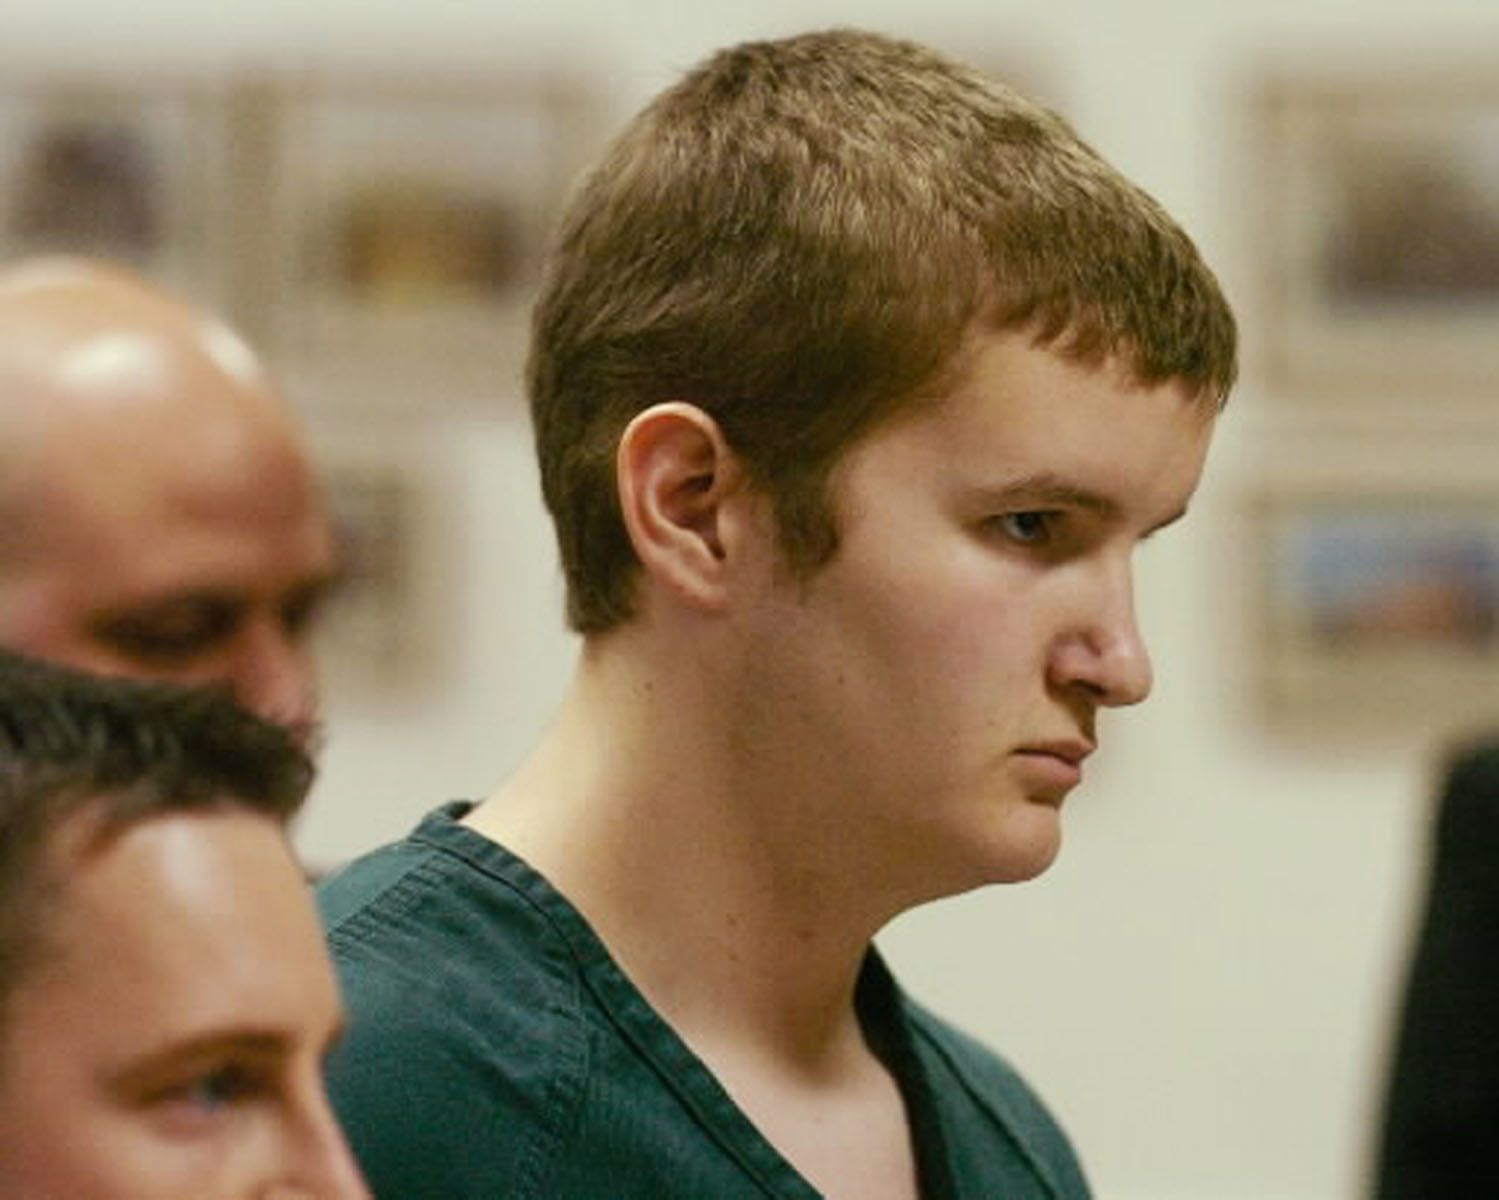 Jon Romano, who was convicted of attempted murder and reckless endangerment, is seen during an arraignment in 2004.